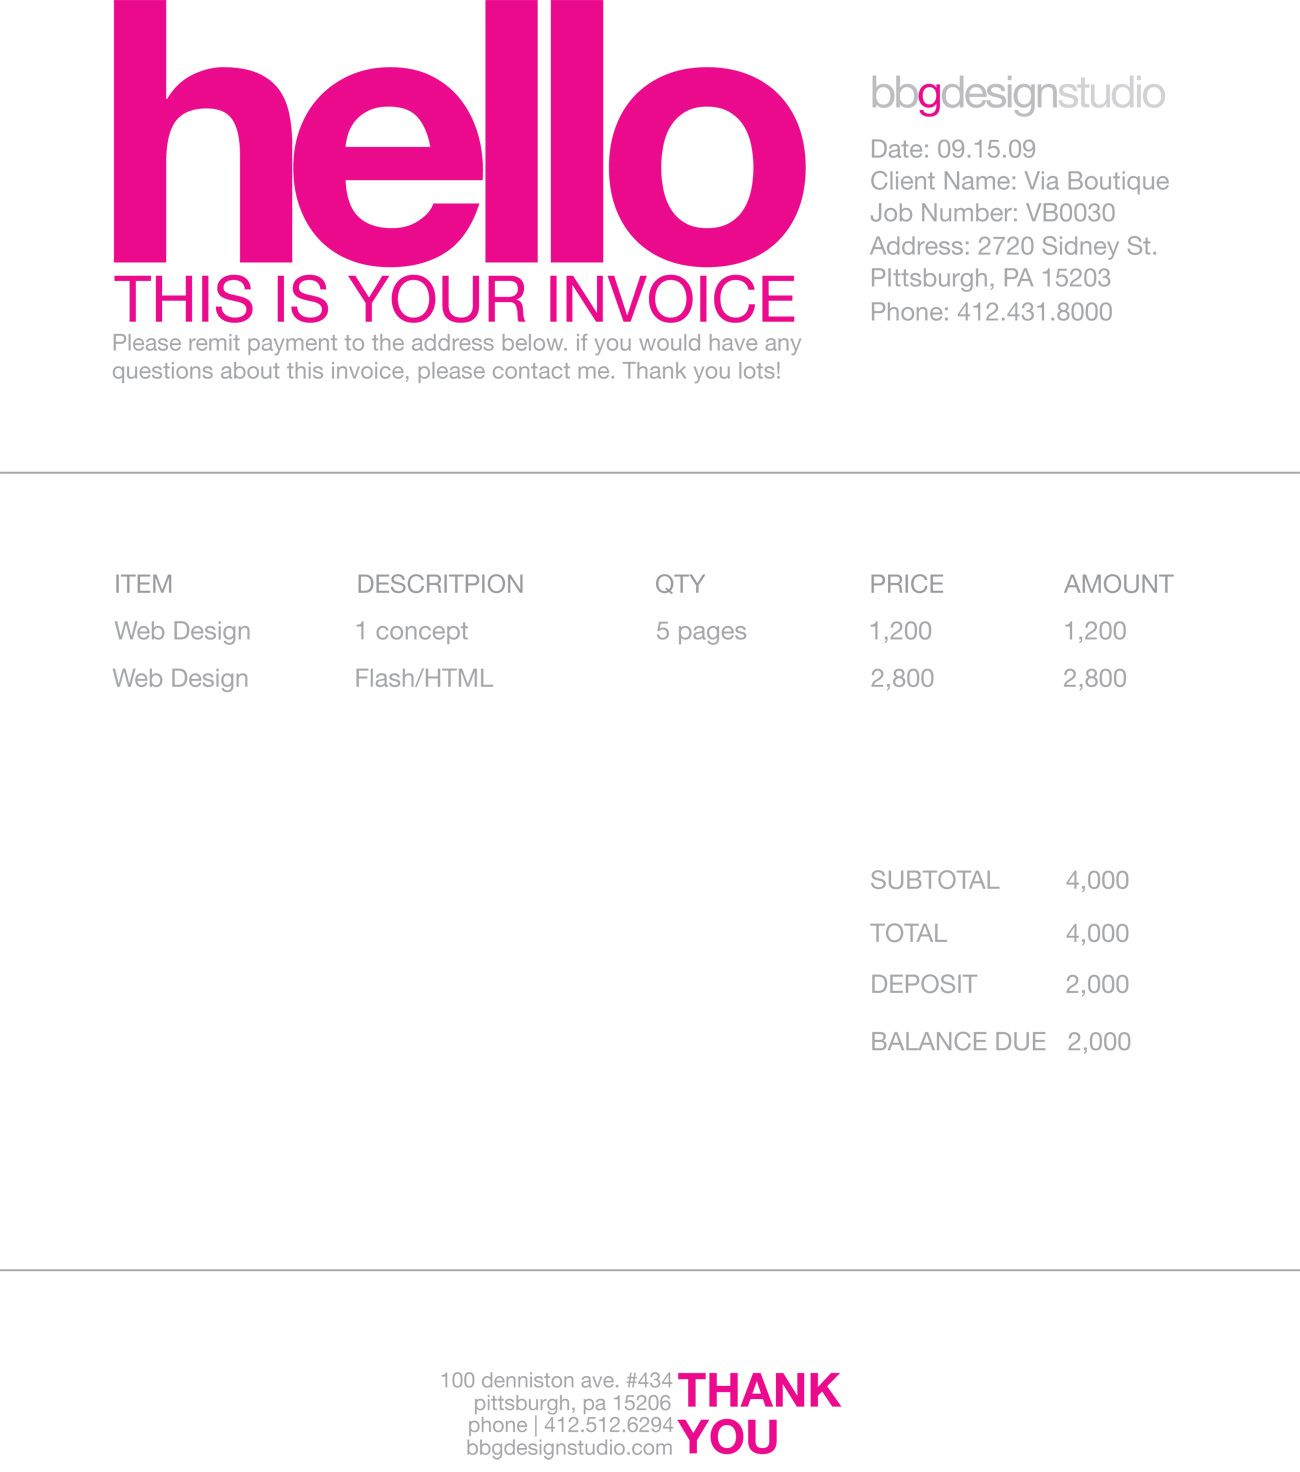 Shopdesignsus  Splendid  Images About Invoice Design On Pinterest With Gorgeous Free Work Invoice Template Besides Wawf My Invoice Furthermore Custom Carbon Invoices With Agreeable Vw Gti Invoice Also What Is Msrp And Invoice In Addition Blank Invoices Free And Custom Invoice Maker As Well As Parts Invoice Additionally Sample Sales Invoice From Pinterestcom With Shopdesignsus  Gorgeous  Images About Invoice Design On Pinterest With Agreeable Free Work Invoice Template Besides Wawf My Invoice Furthermore Custom Carbon Invoices And Splendid Vw Gti Invoice Also What Is Msrp And Invoice In Addition Blank Invoices Free From Pinterestcom